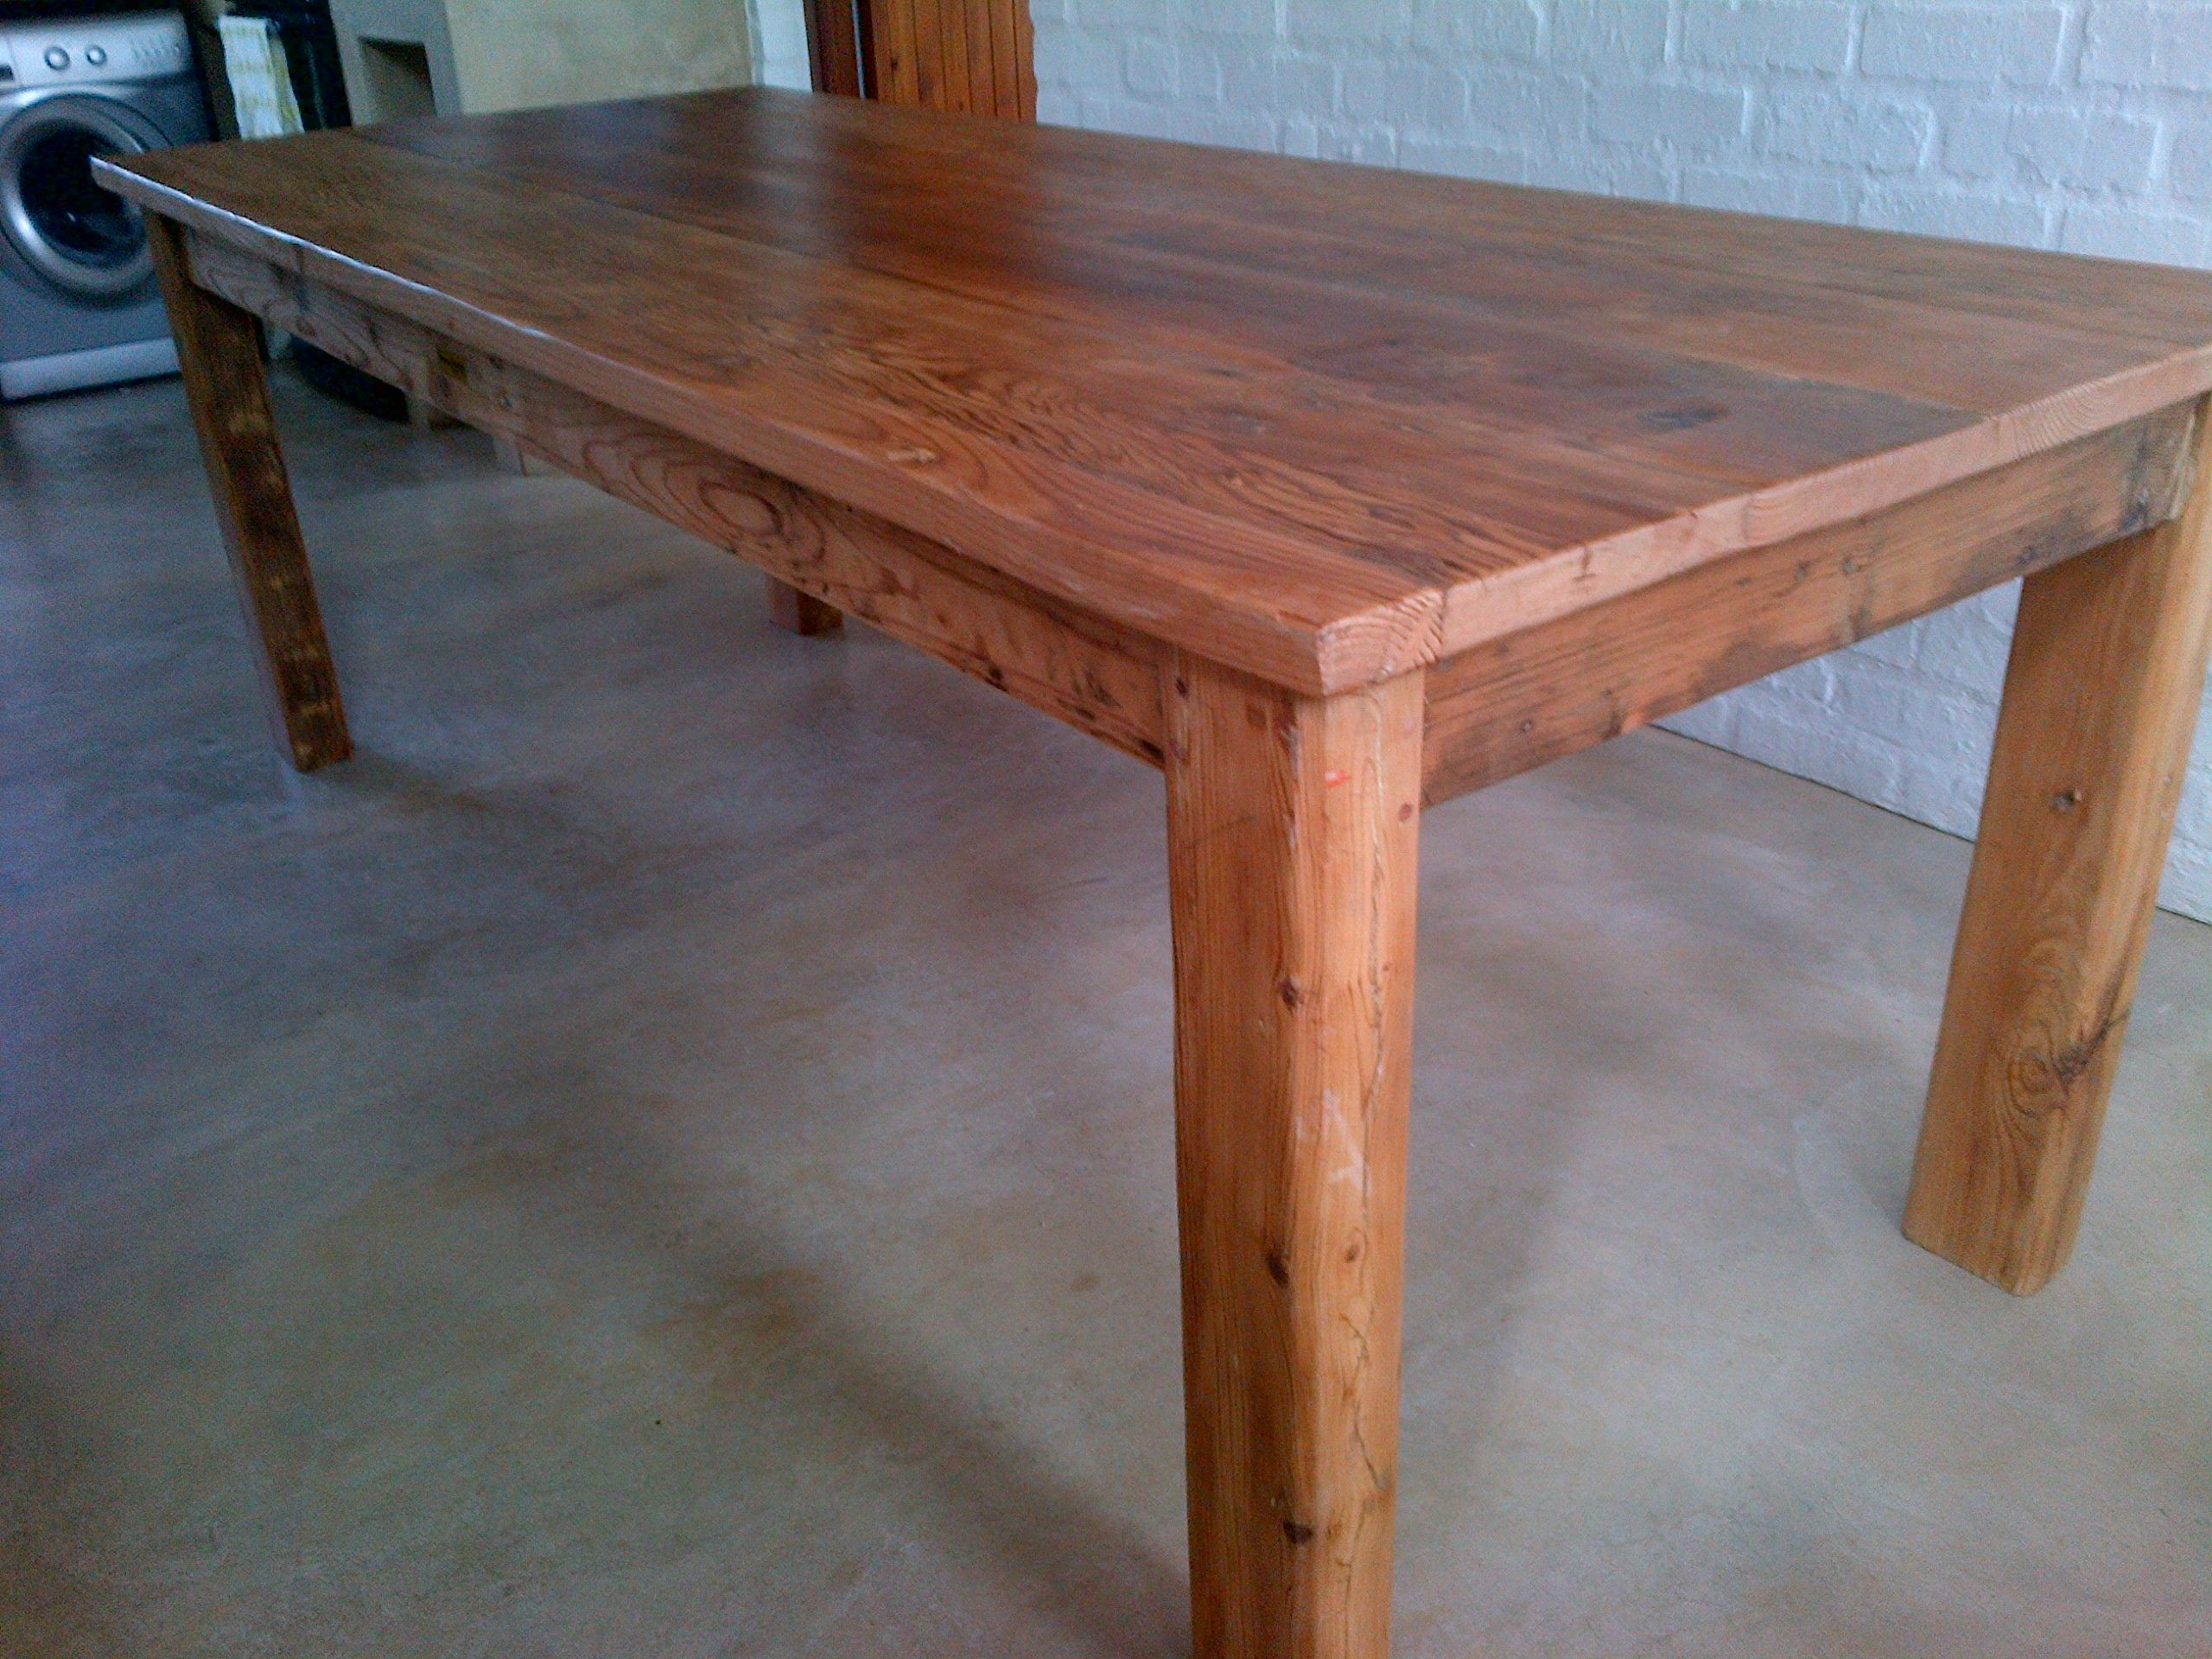 Rustic Table Seats 12 Recycled and reclaimed wood with natural